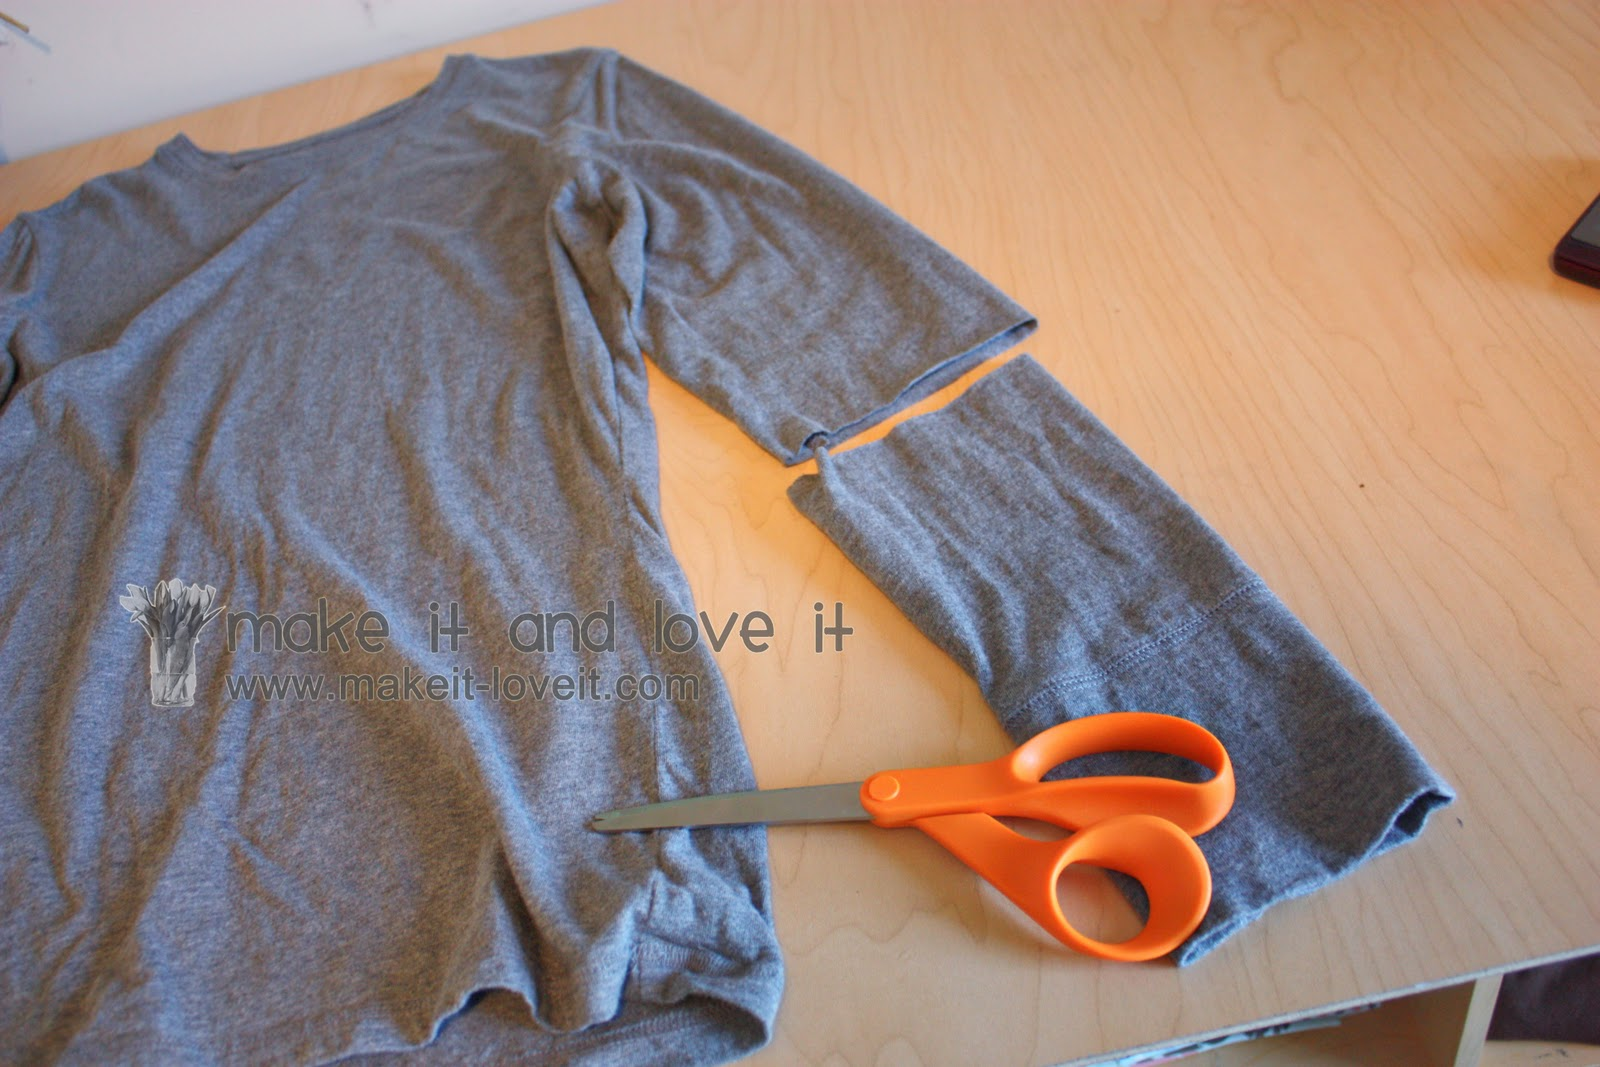 Re-purposing: Women's Long Sleeved Shirt into Short Sleeves ...